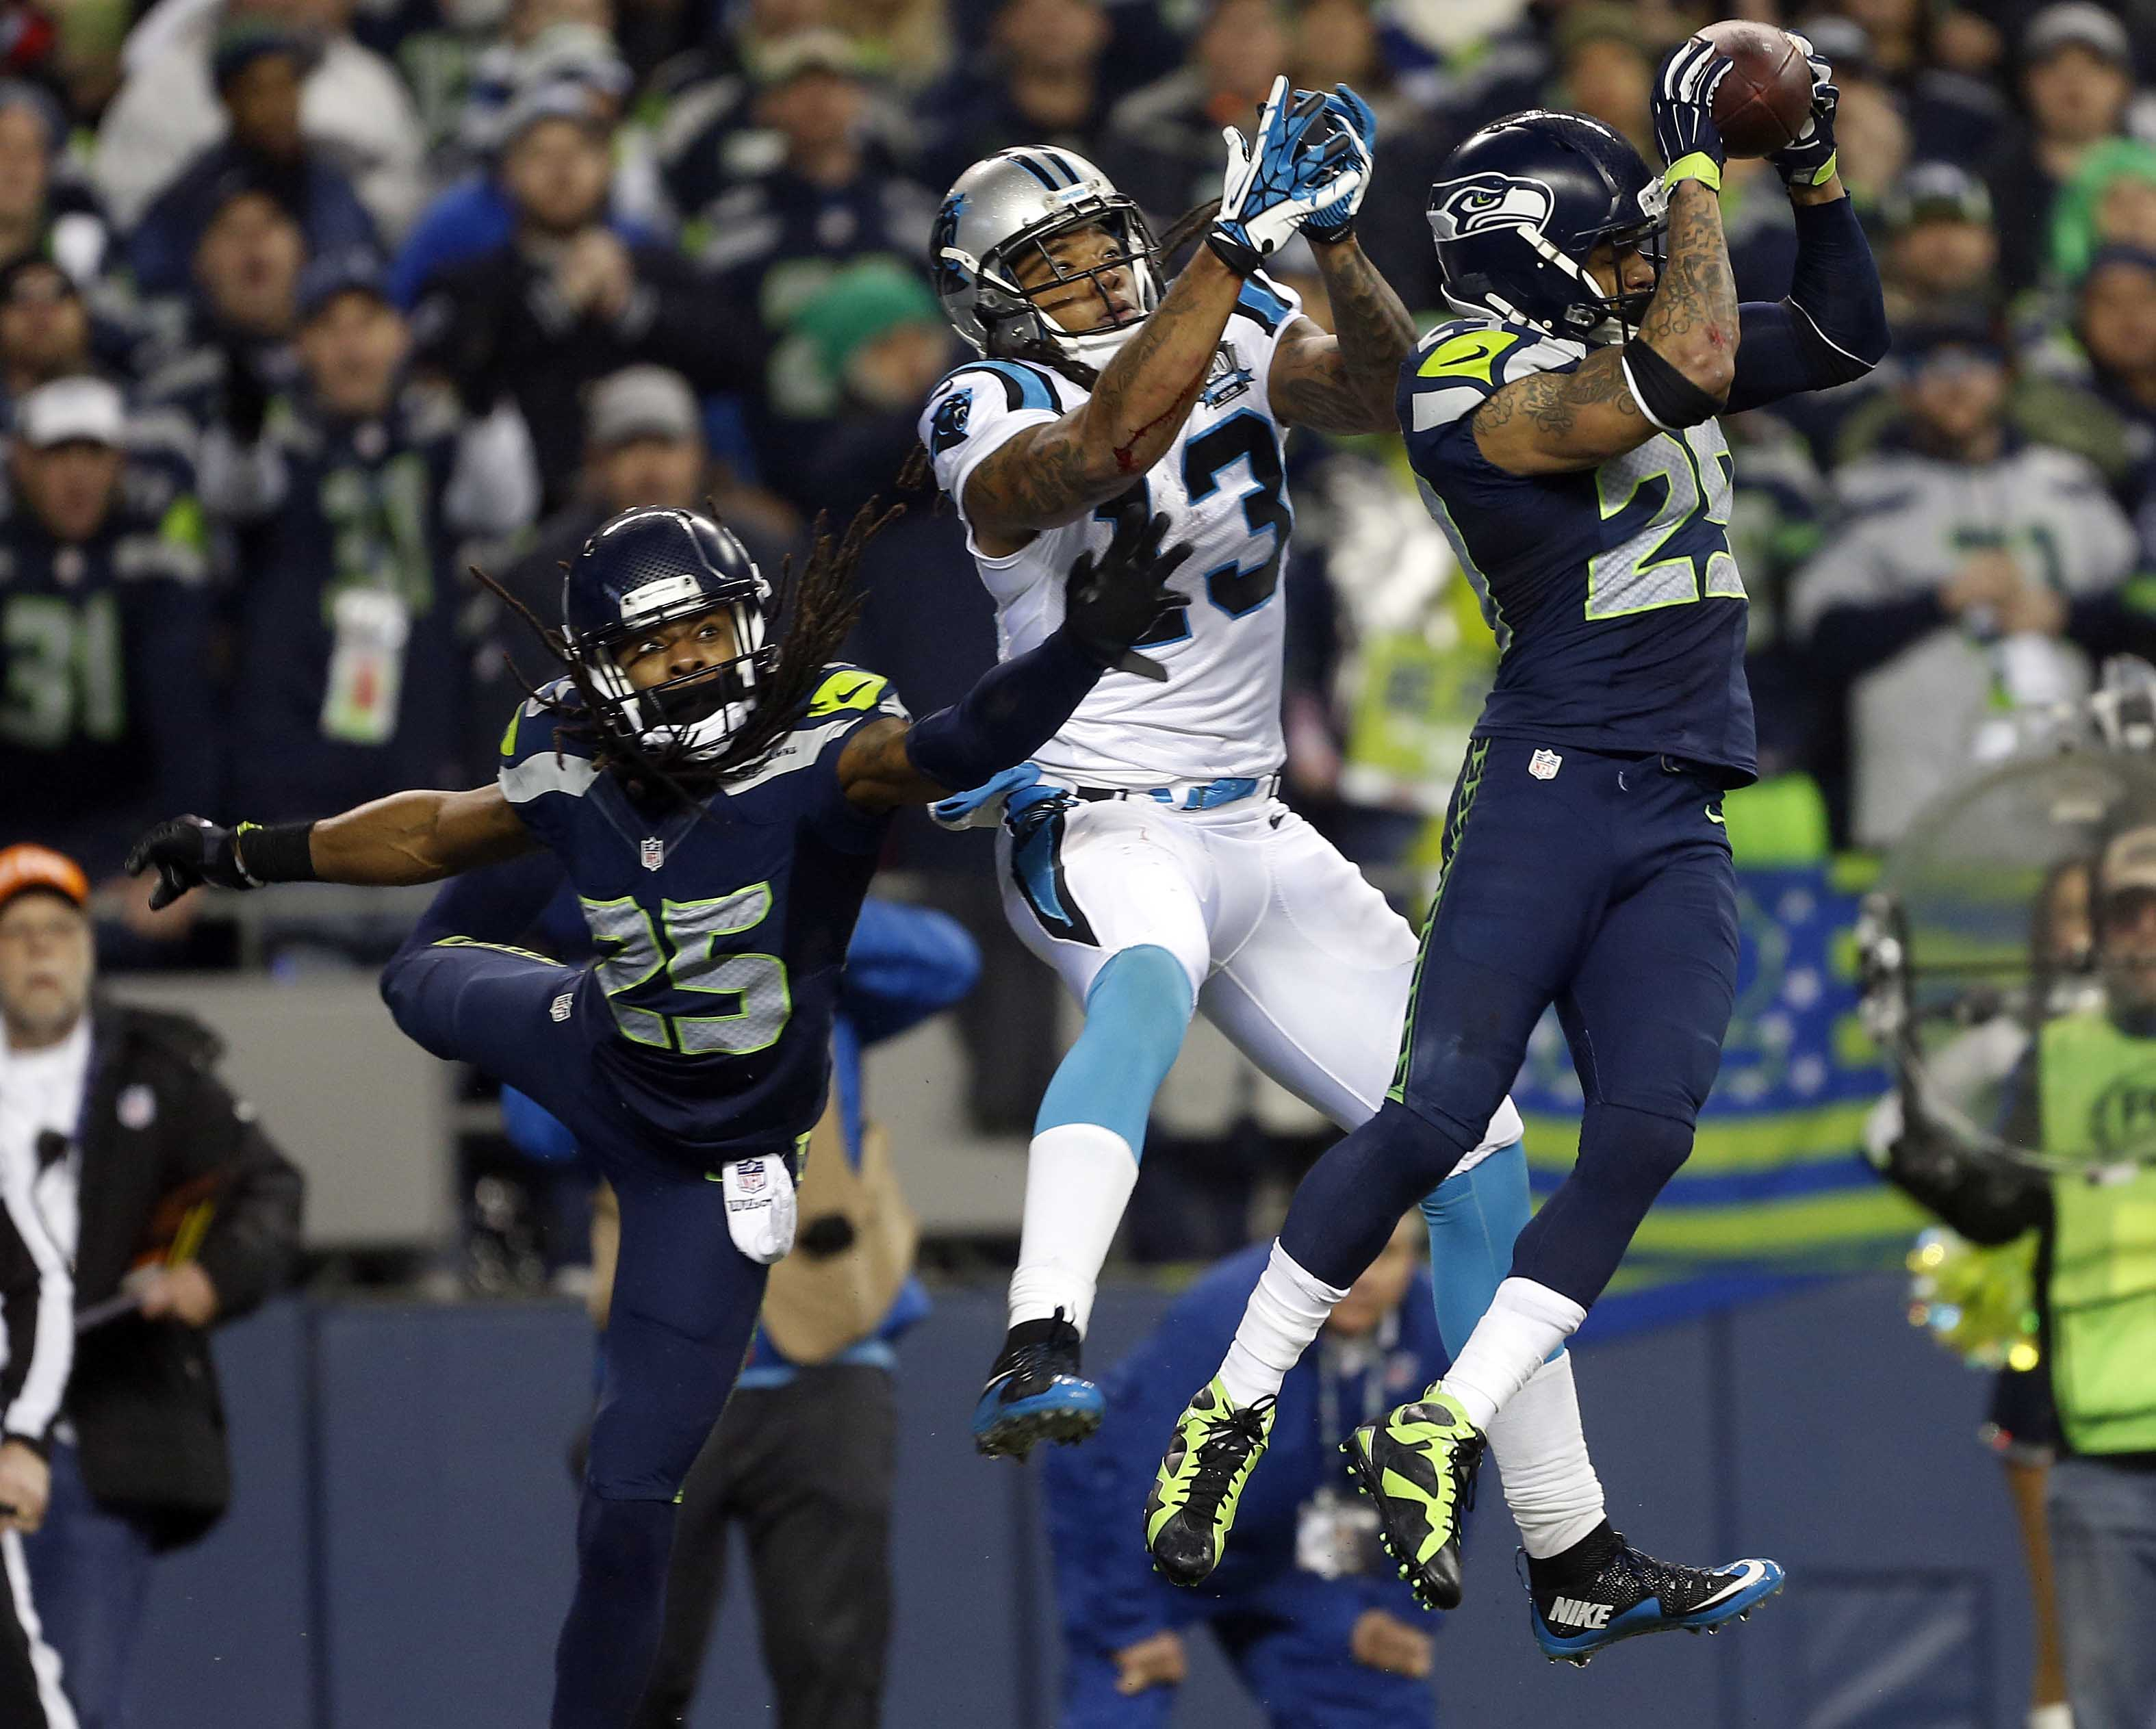 8324433-nfl-divisional-round-carolina-panthers-at-seattle-seahawks